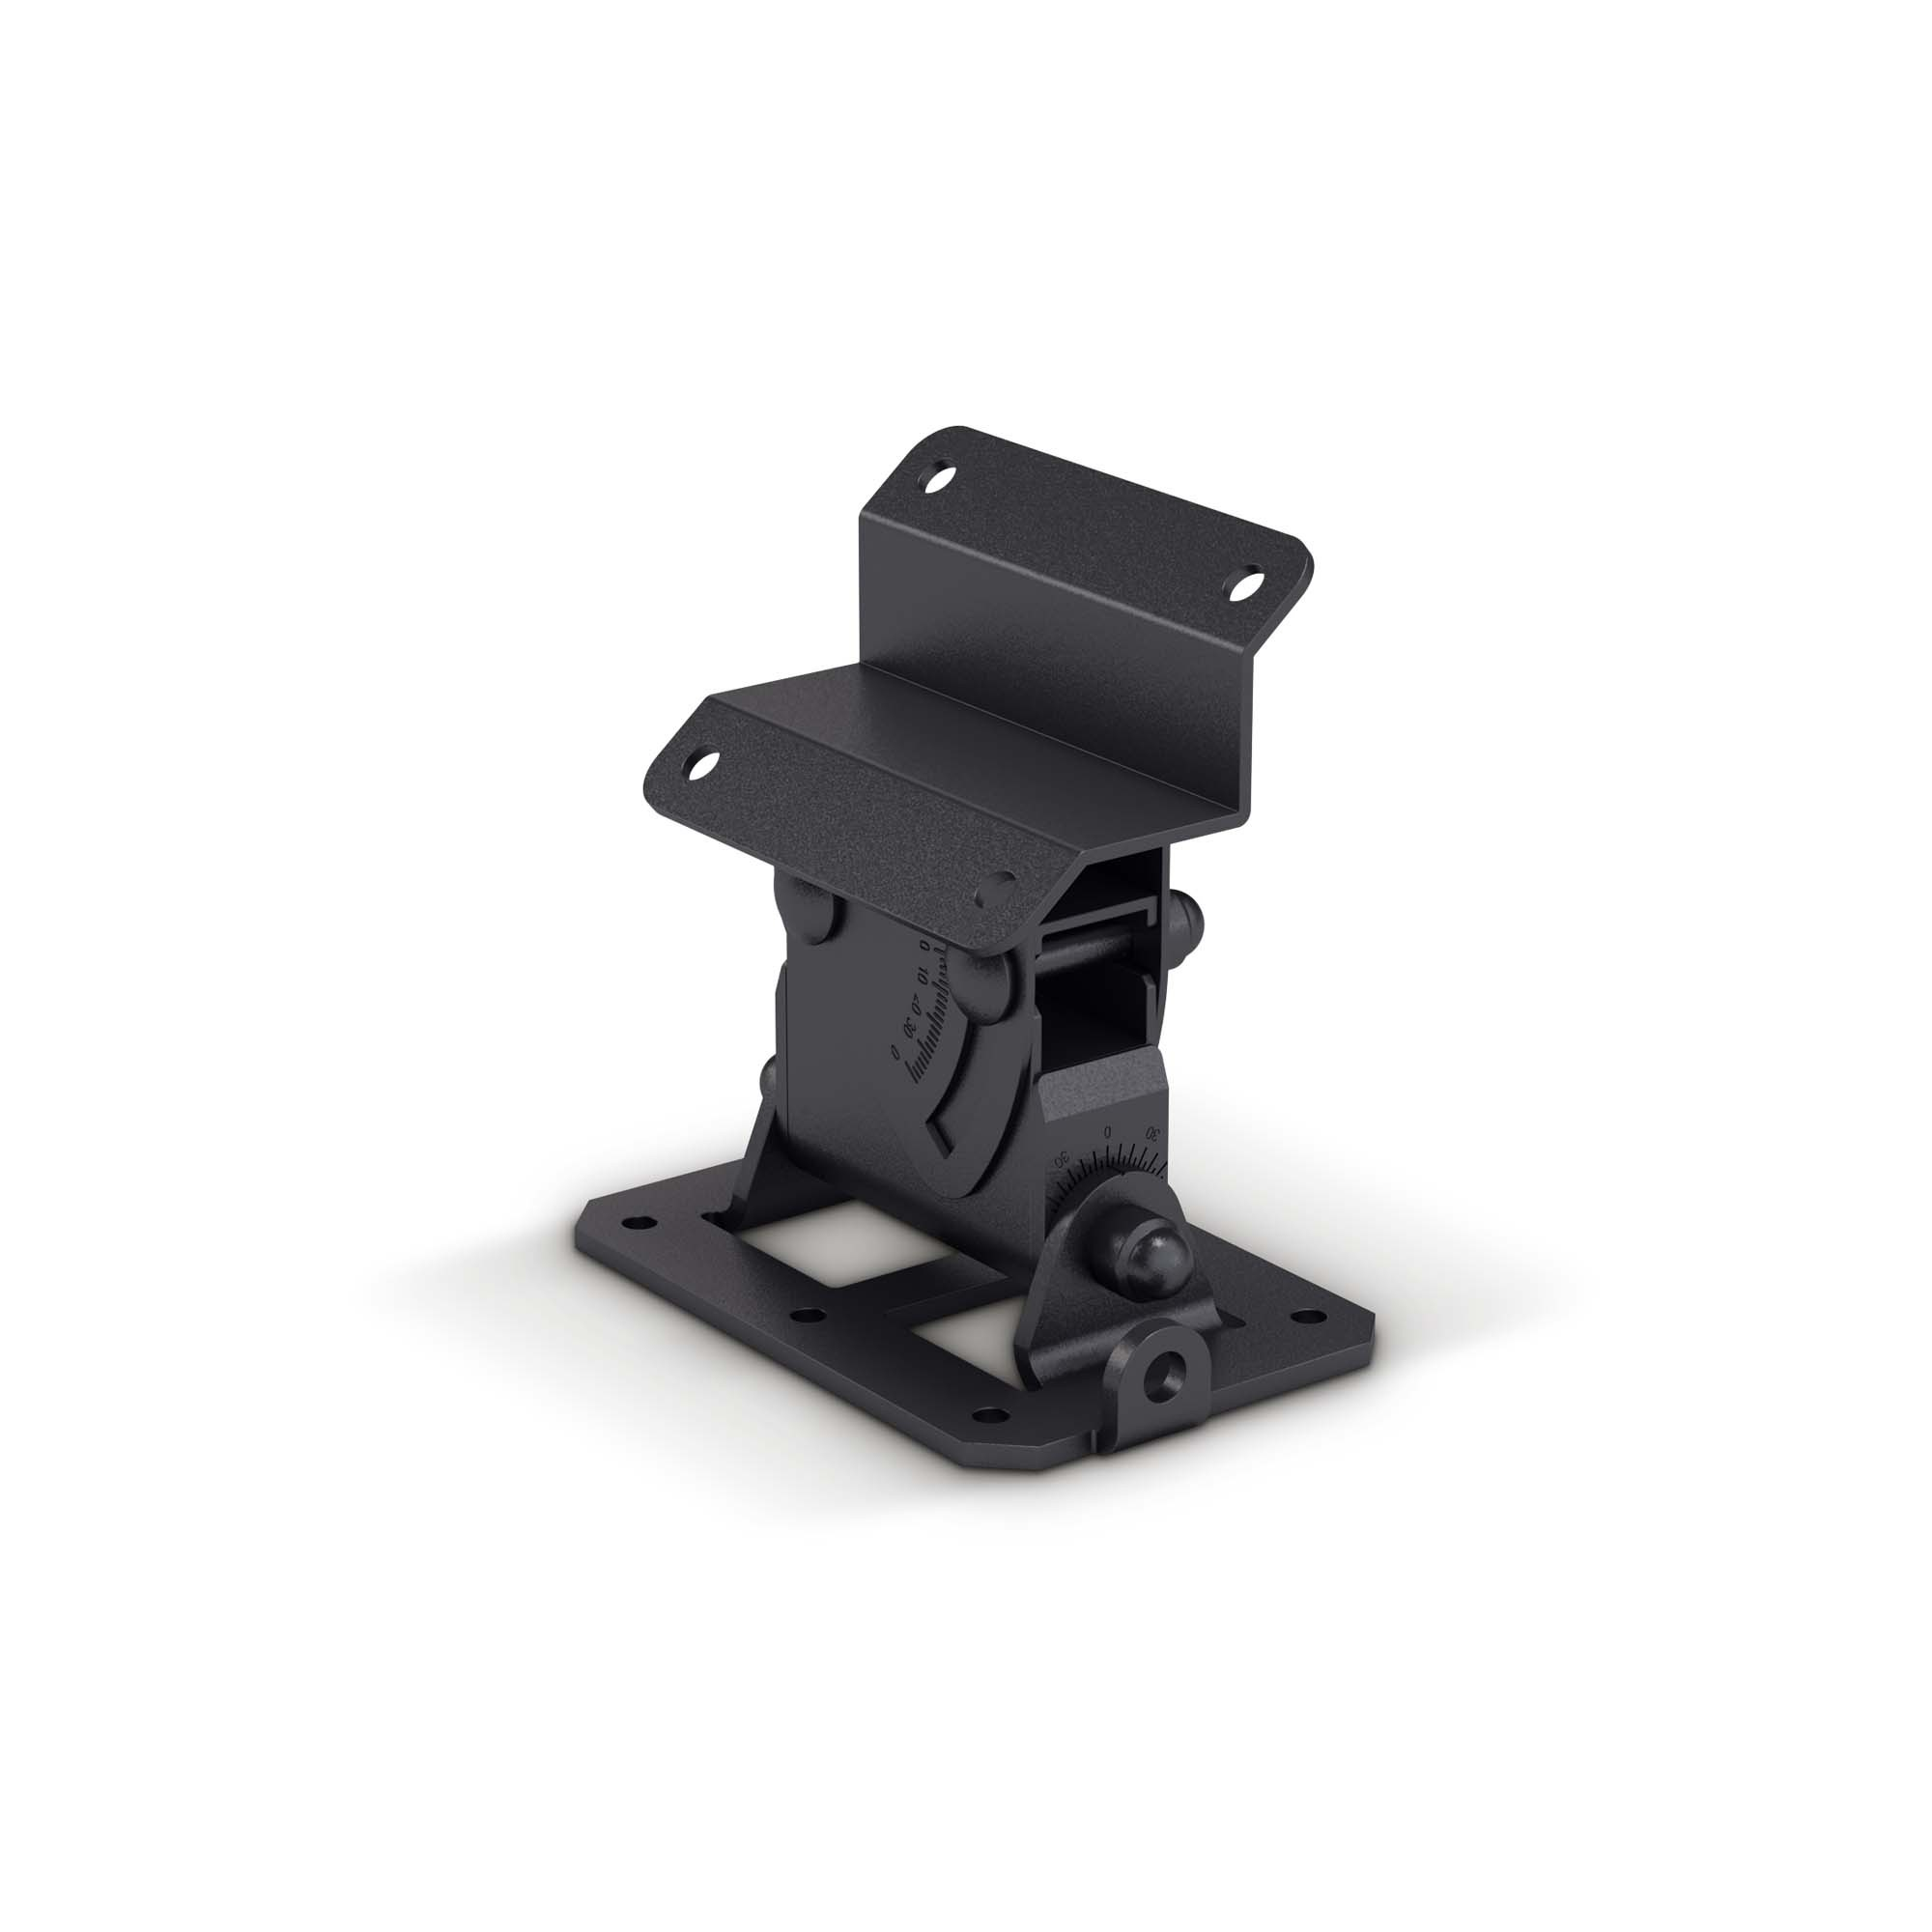 "STINGER G3 WMB 1 Tilt & swivel wall mount for Stinger® G3 12"" and 15"" models"